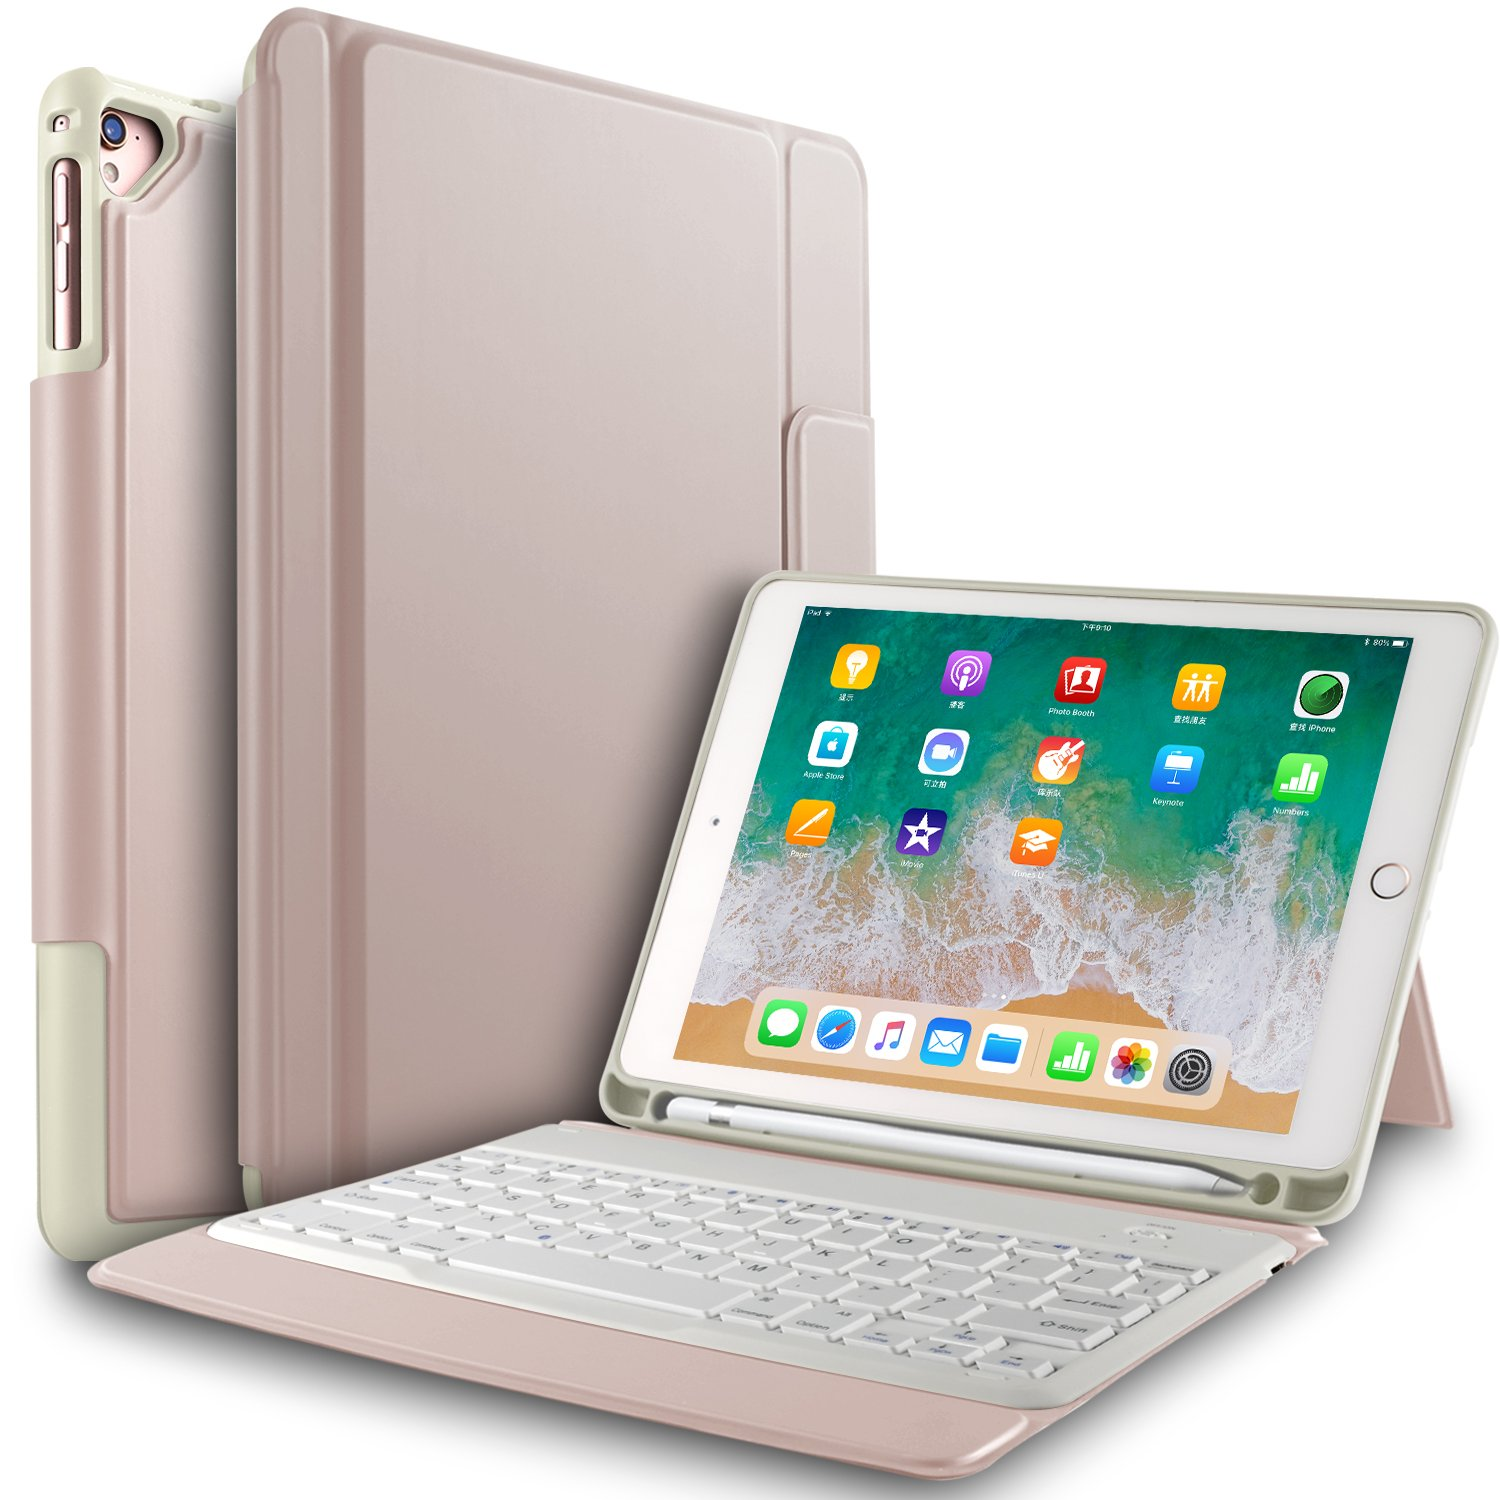 IVSO Apple New iPad 9.7 inch Wireless Keyboard Case, Ultra-Thin Stand Keyboard Case with Pencil Slot for New iPad 9.7 2018/2017/ iPad Pro 9.7 /iPad Air 2/ iPad Air Tablet (Rose Gold)